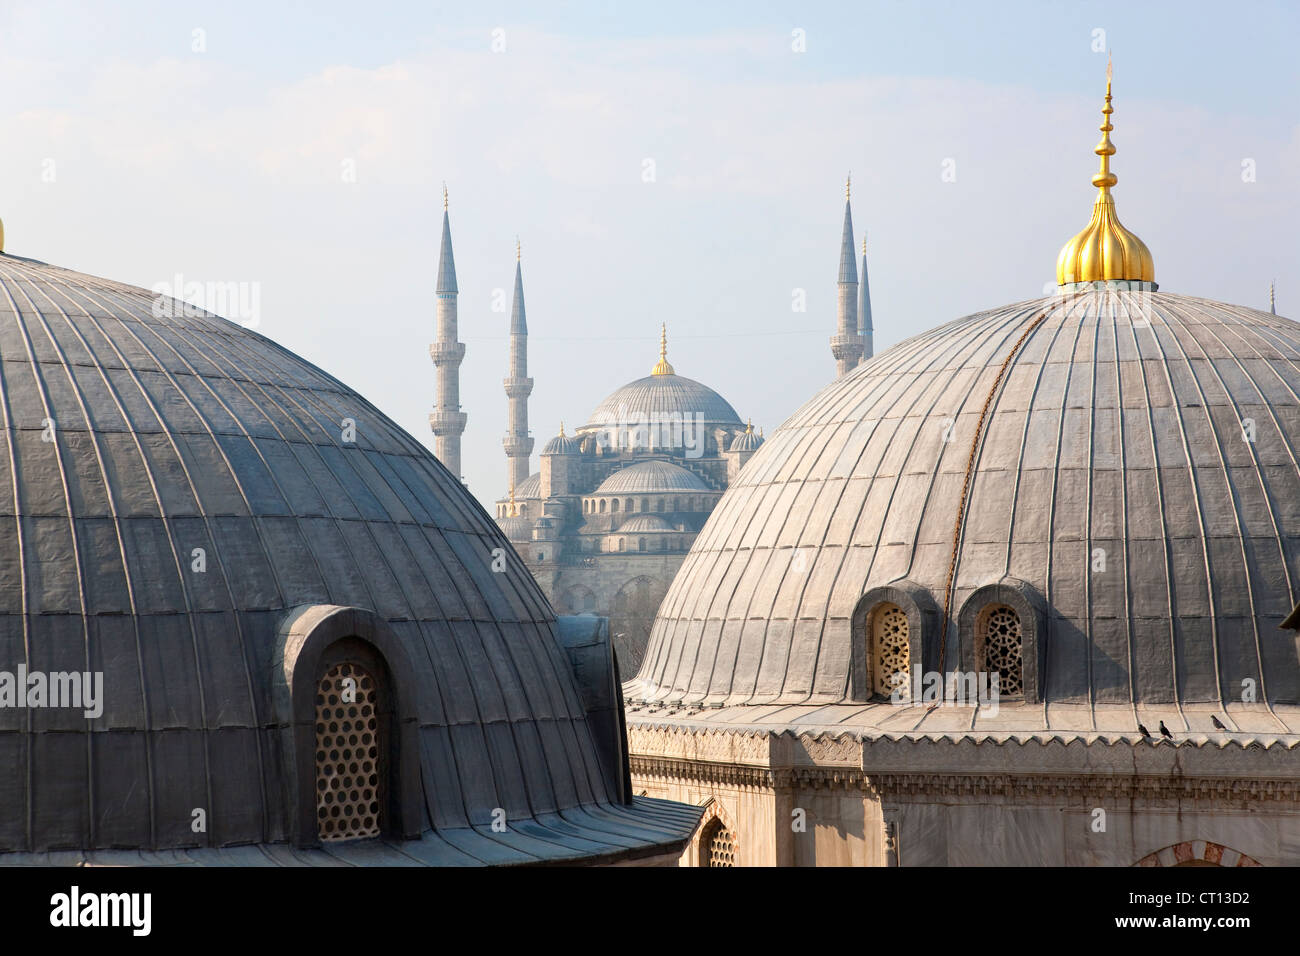 Ornate domes and windows - Stock Image